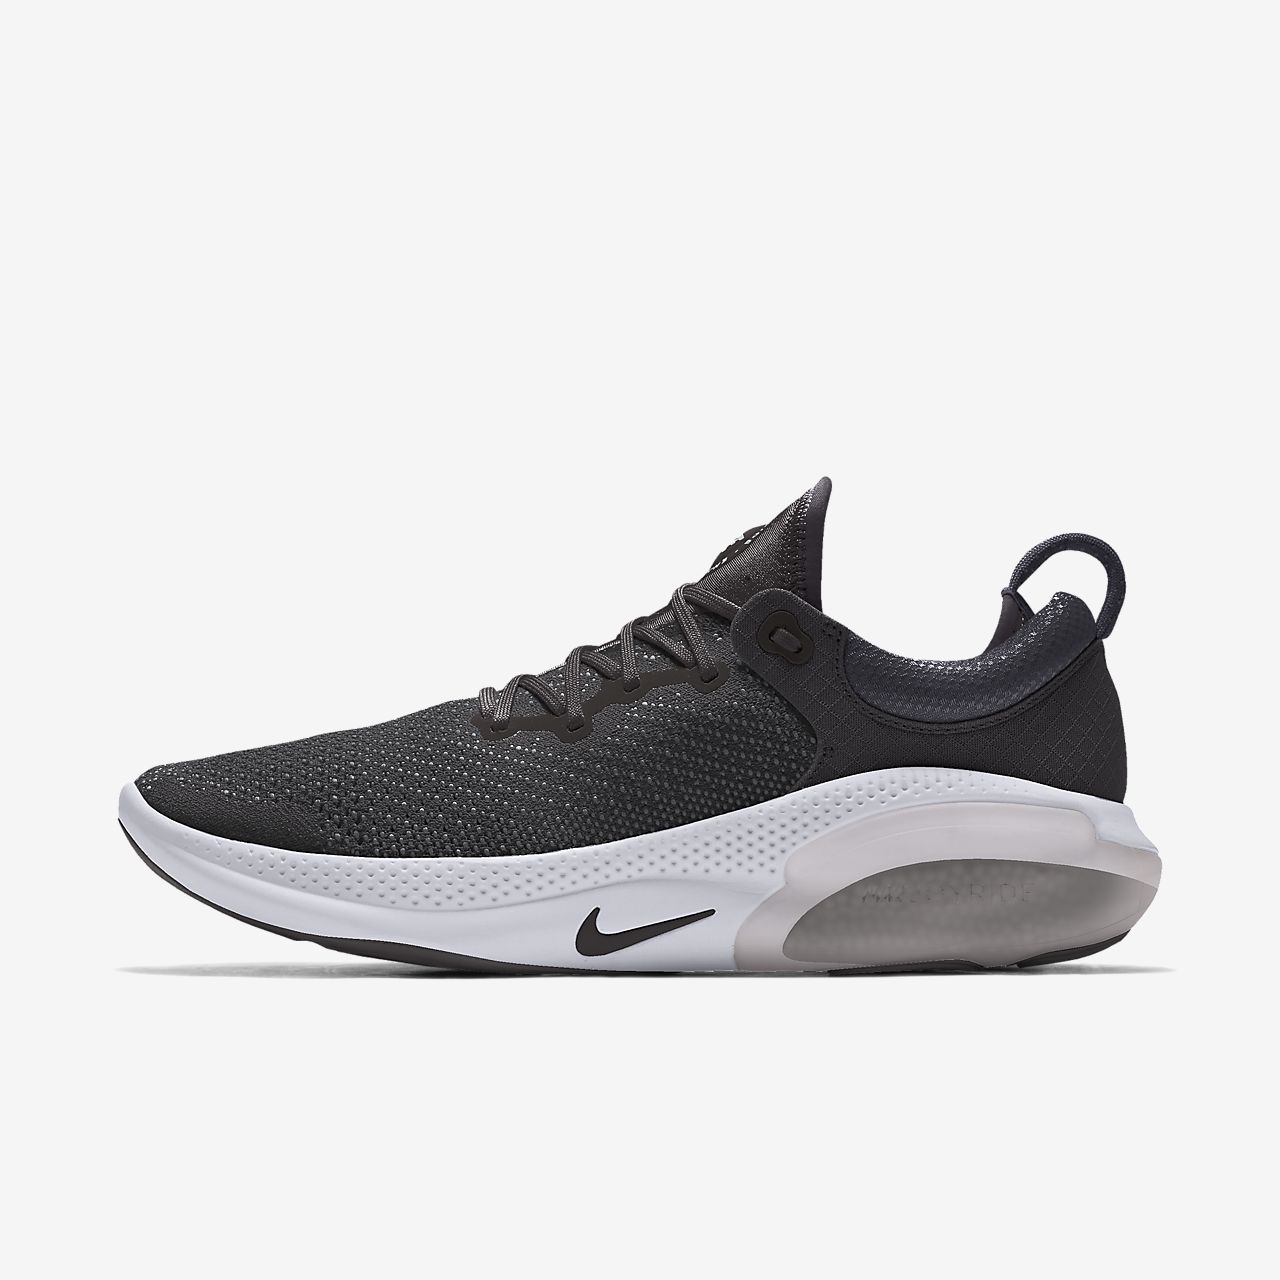 Chaussure de running personnalisable Nike Joyride Run Flyknit By You pour Homme